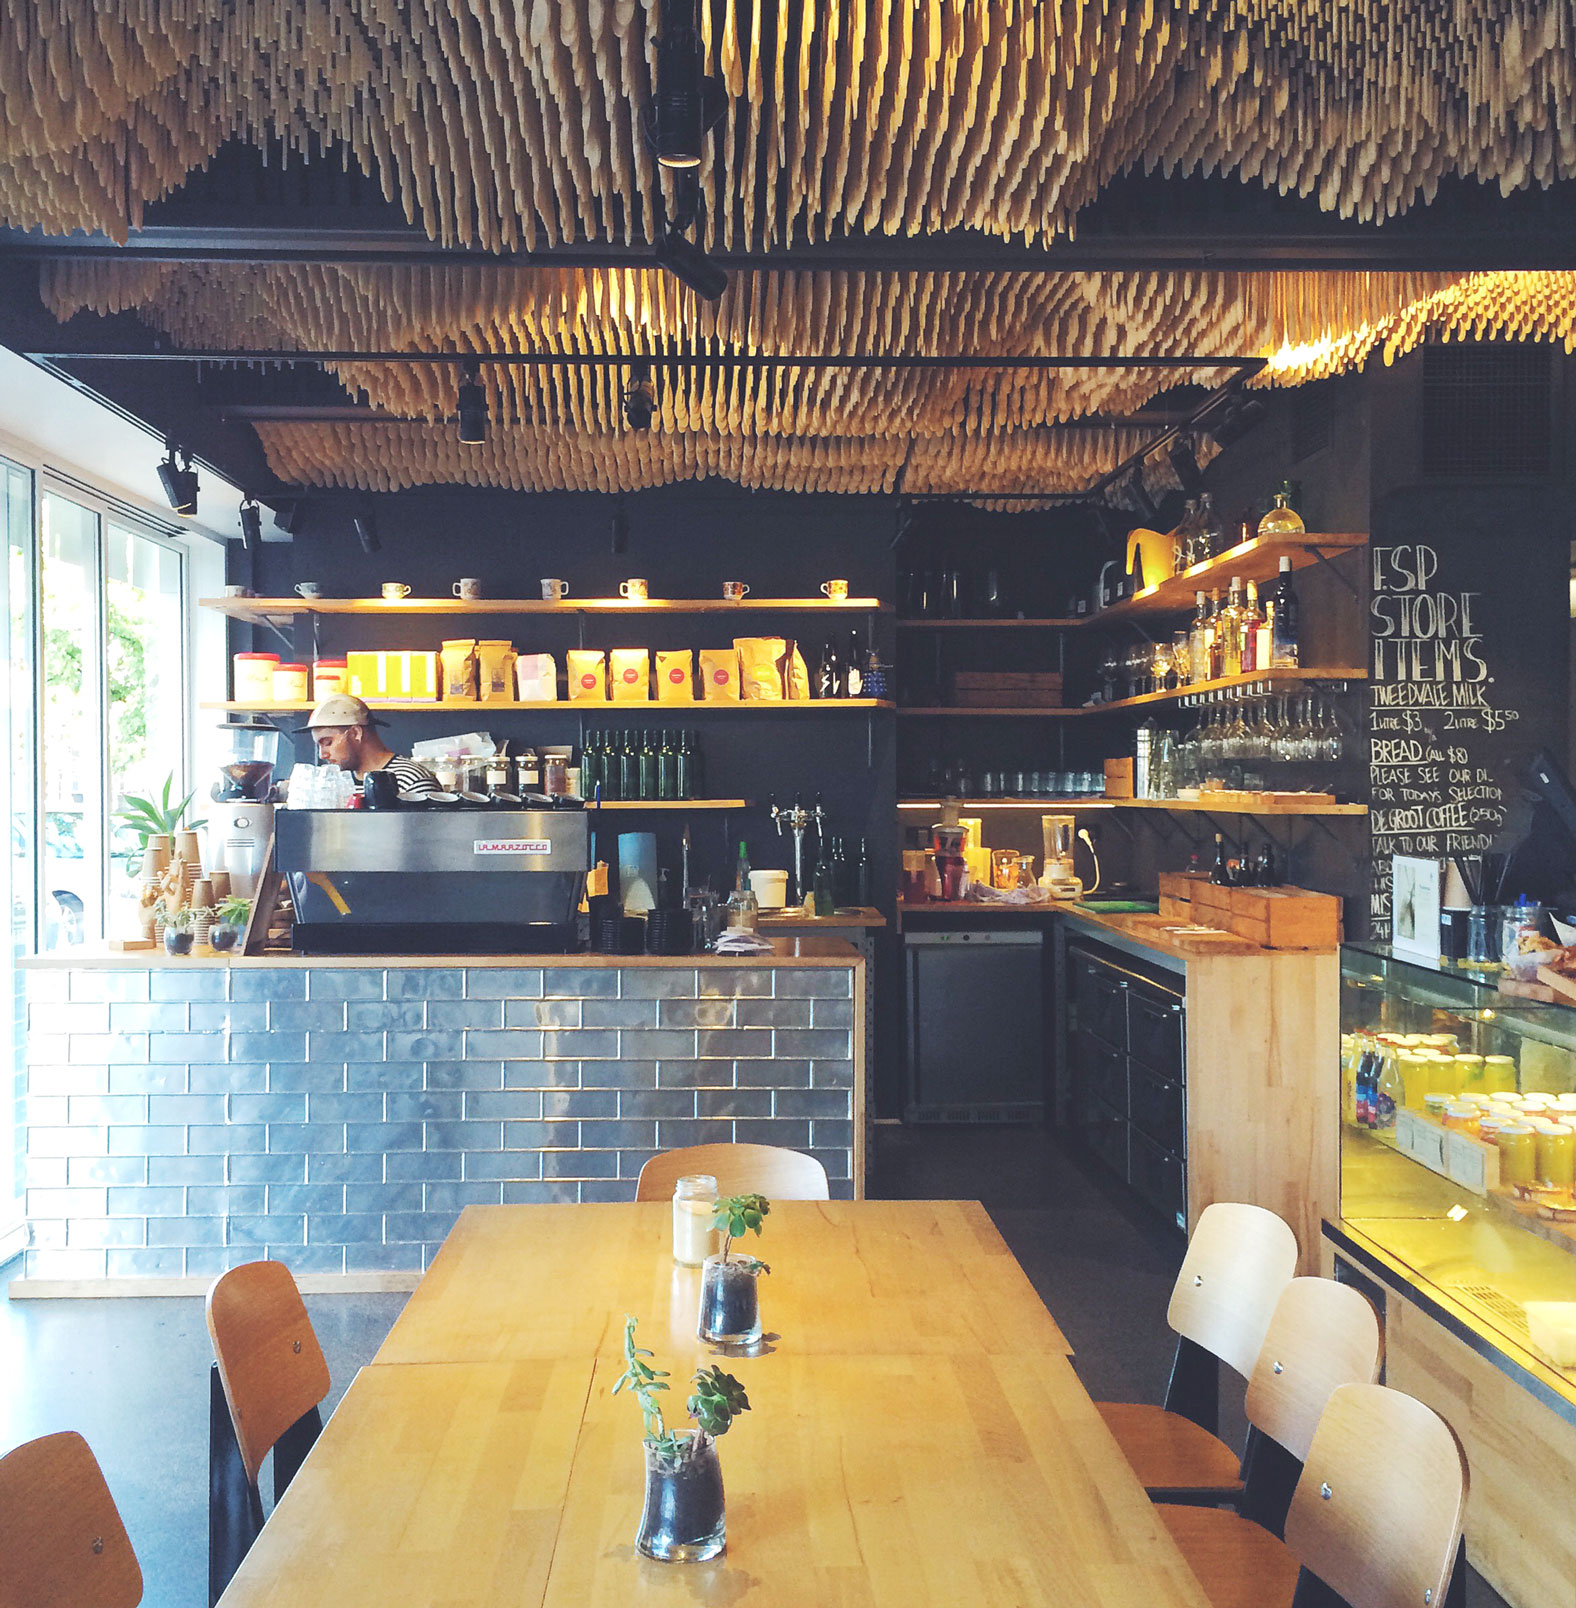 8 adelaide cafes you will love | world of wanderlust